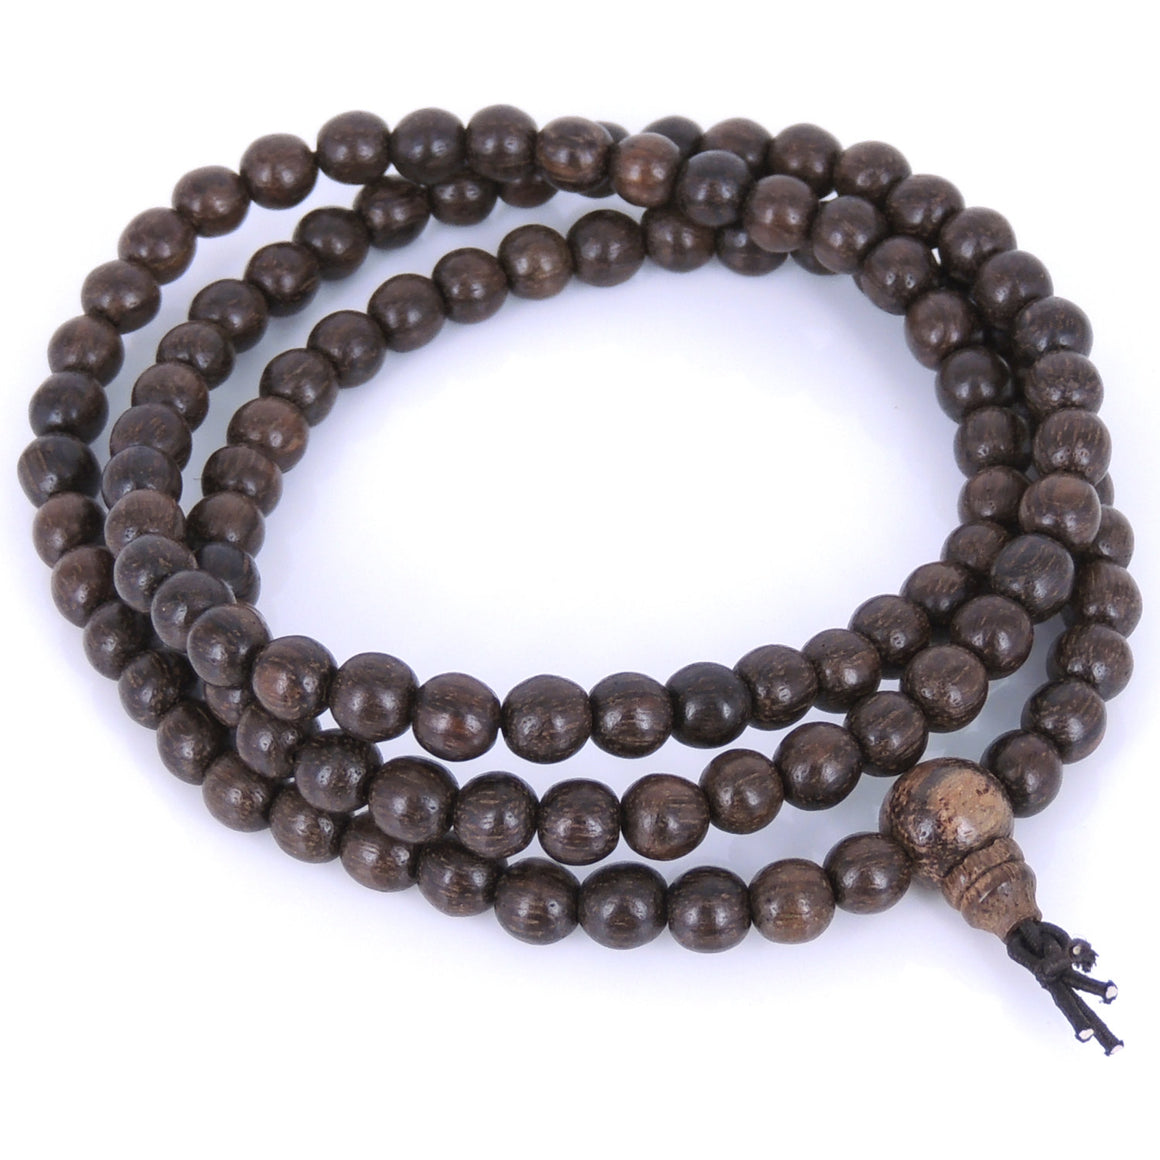 6.5mm Red Vietnamese Agarwood Bracelet/Necklace 108 Beads for Meditation - Gem & Silver AWB009